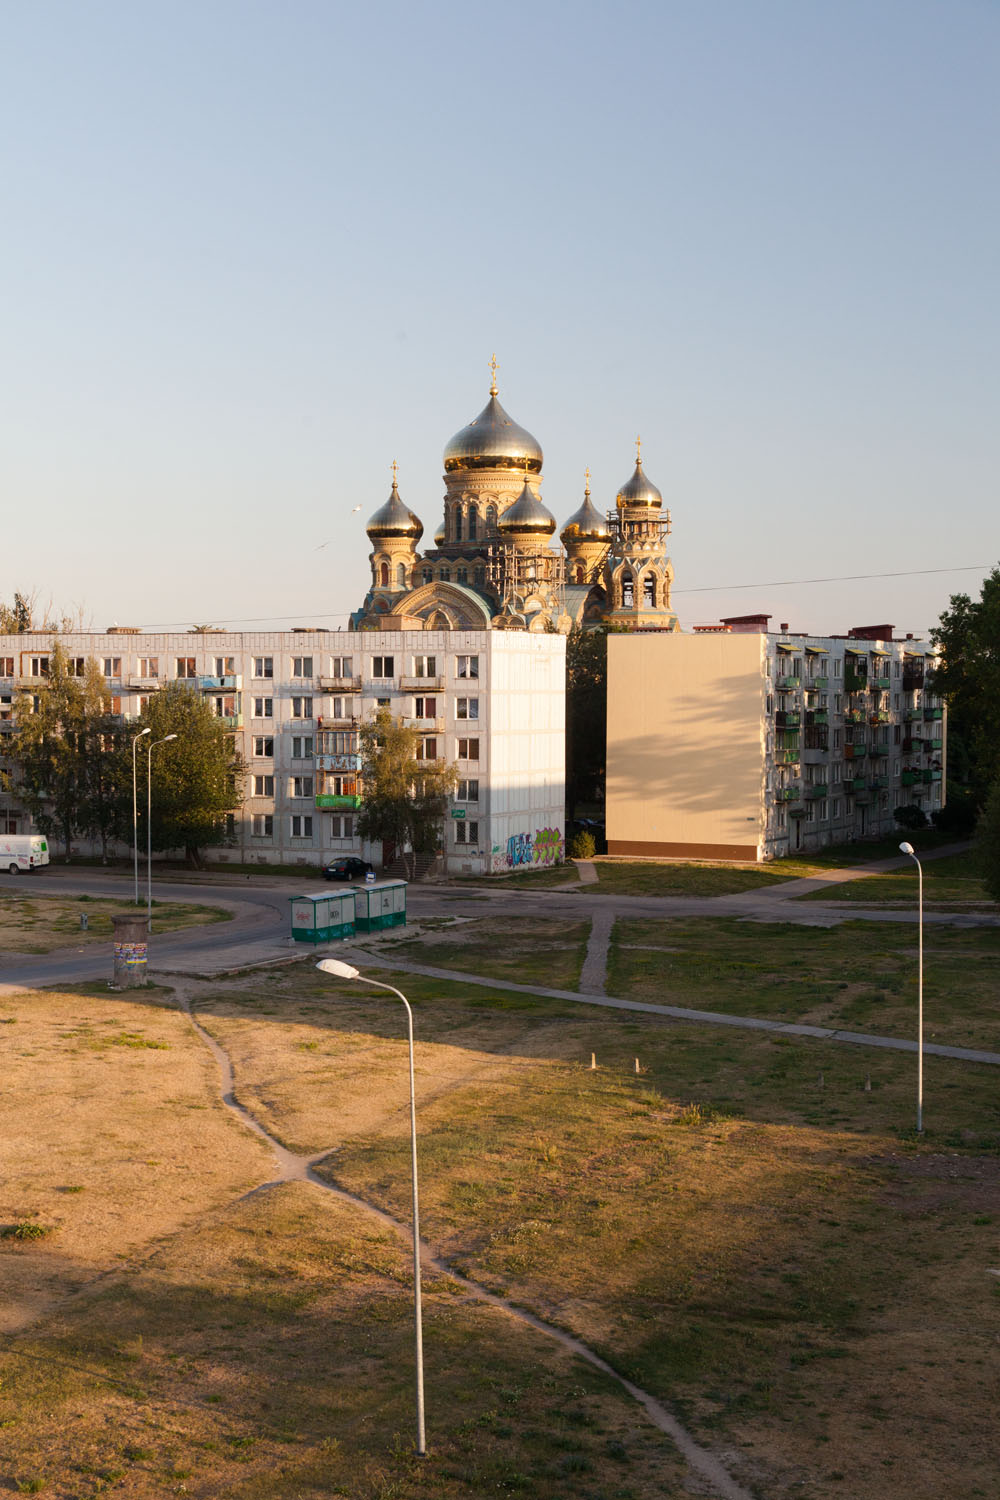 A collaborative project in Karosta, Liepaja with Lucas Pernin.